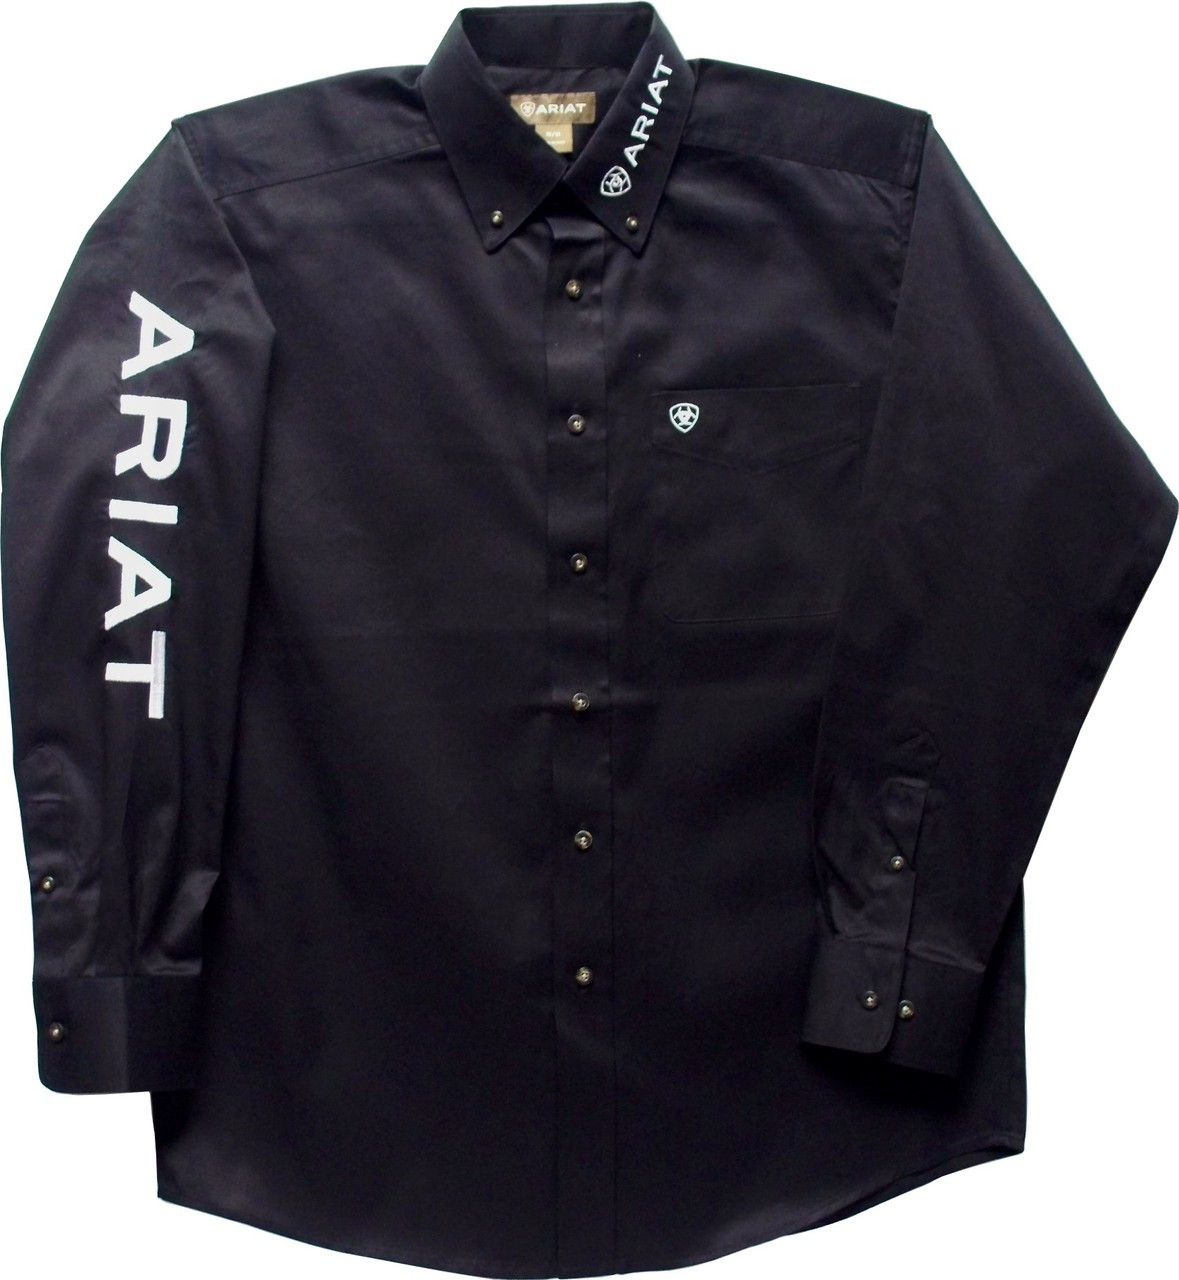 Ariat Mens Black Embroidered Team Logo Shirt 10017497